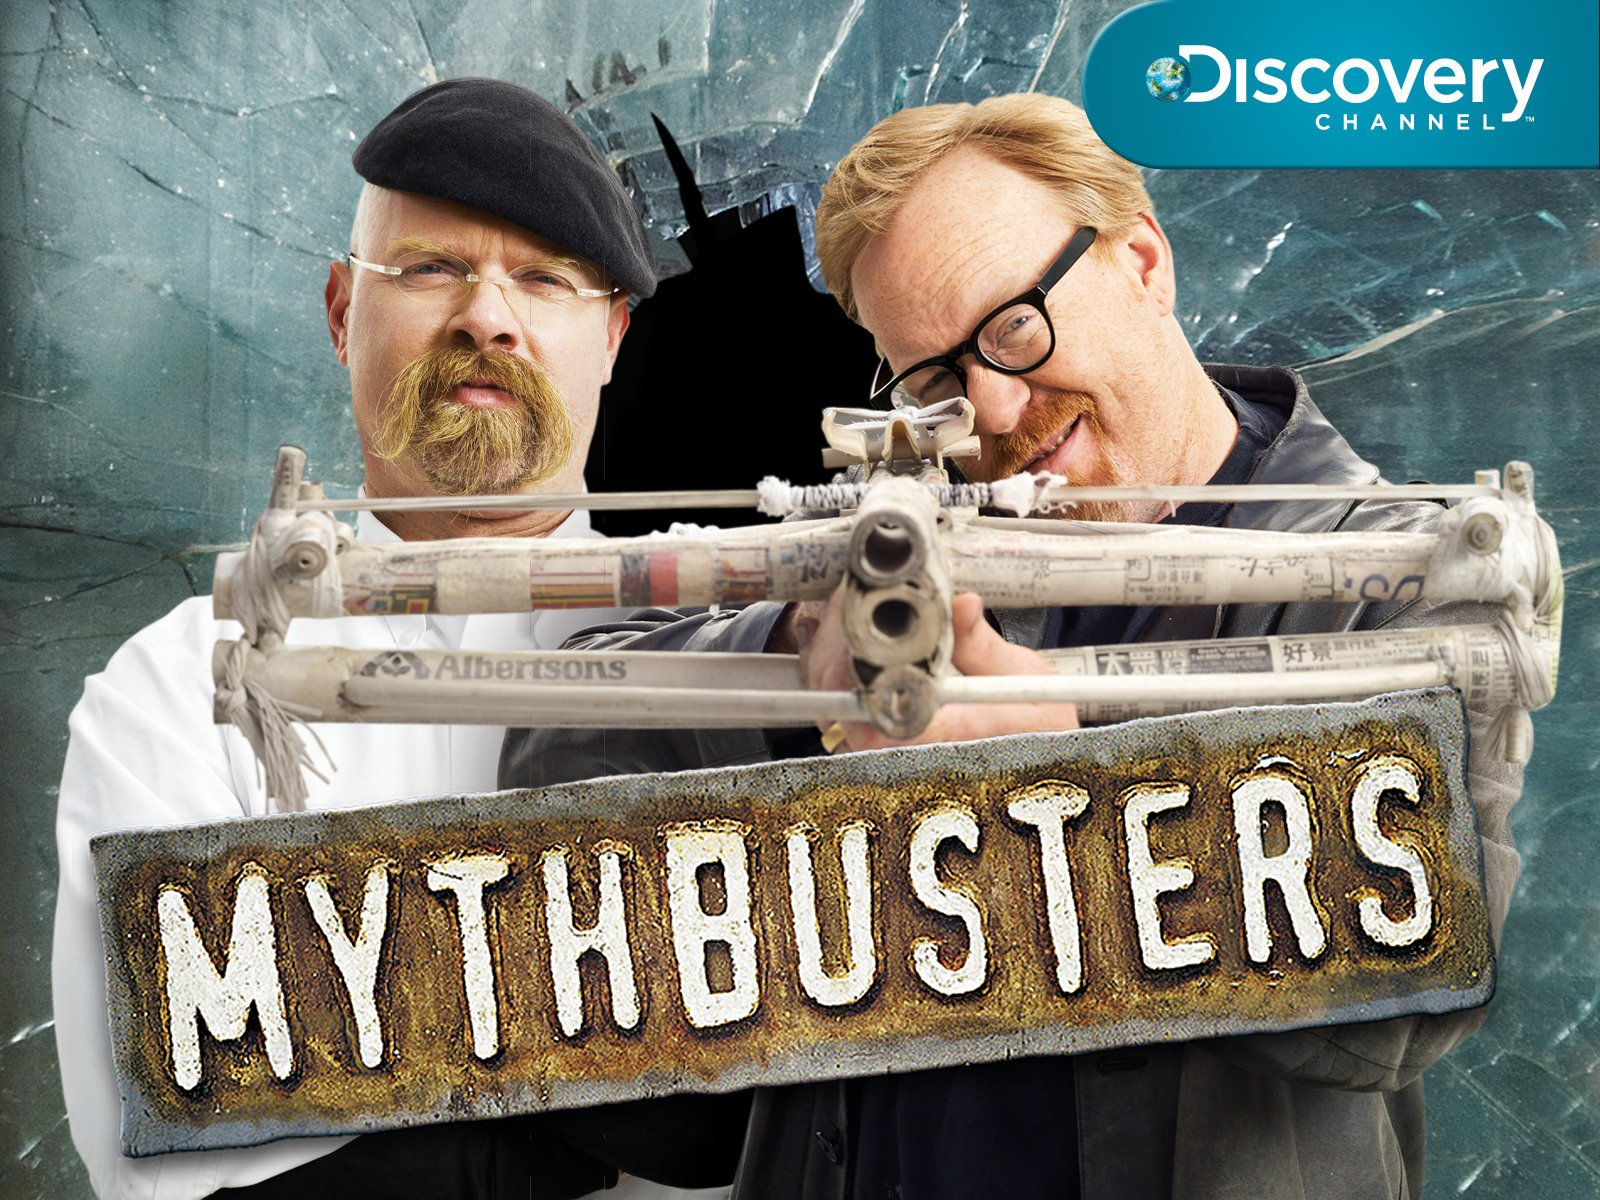 amazoncom mythbusters season 5 amazon digital services llc - Mythbusters Christmas Tree